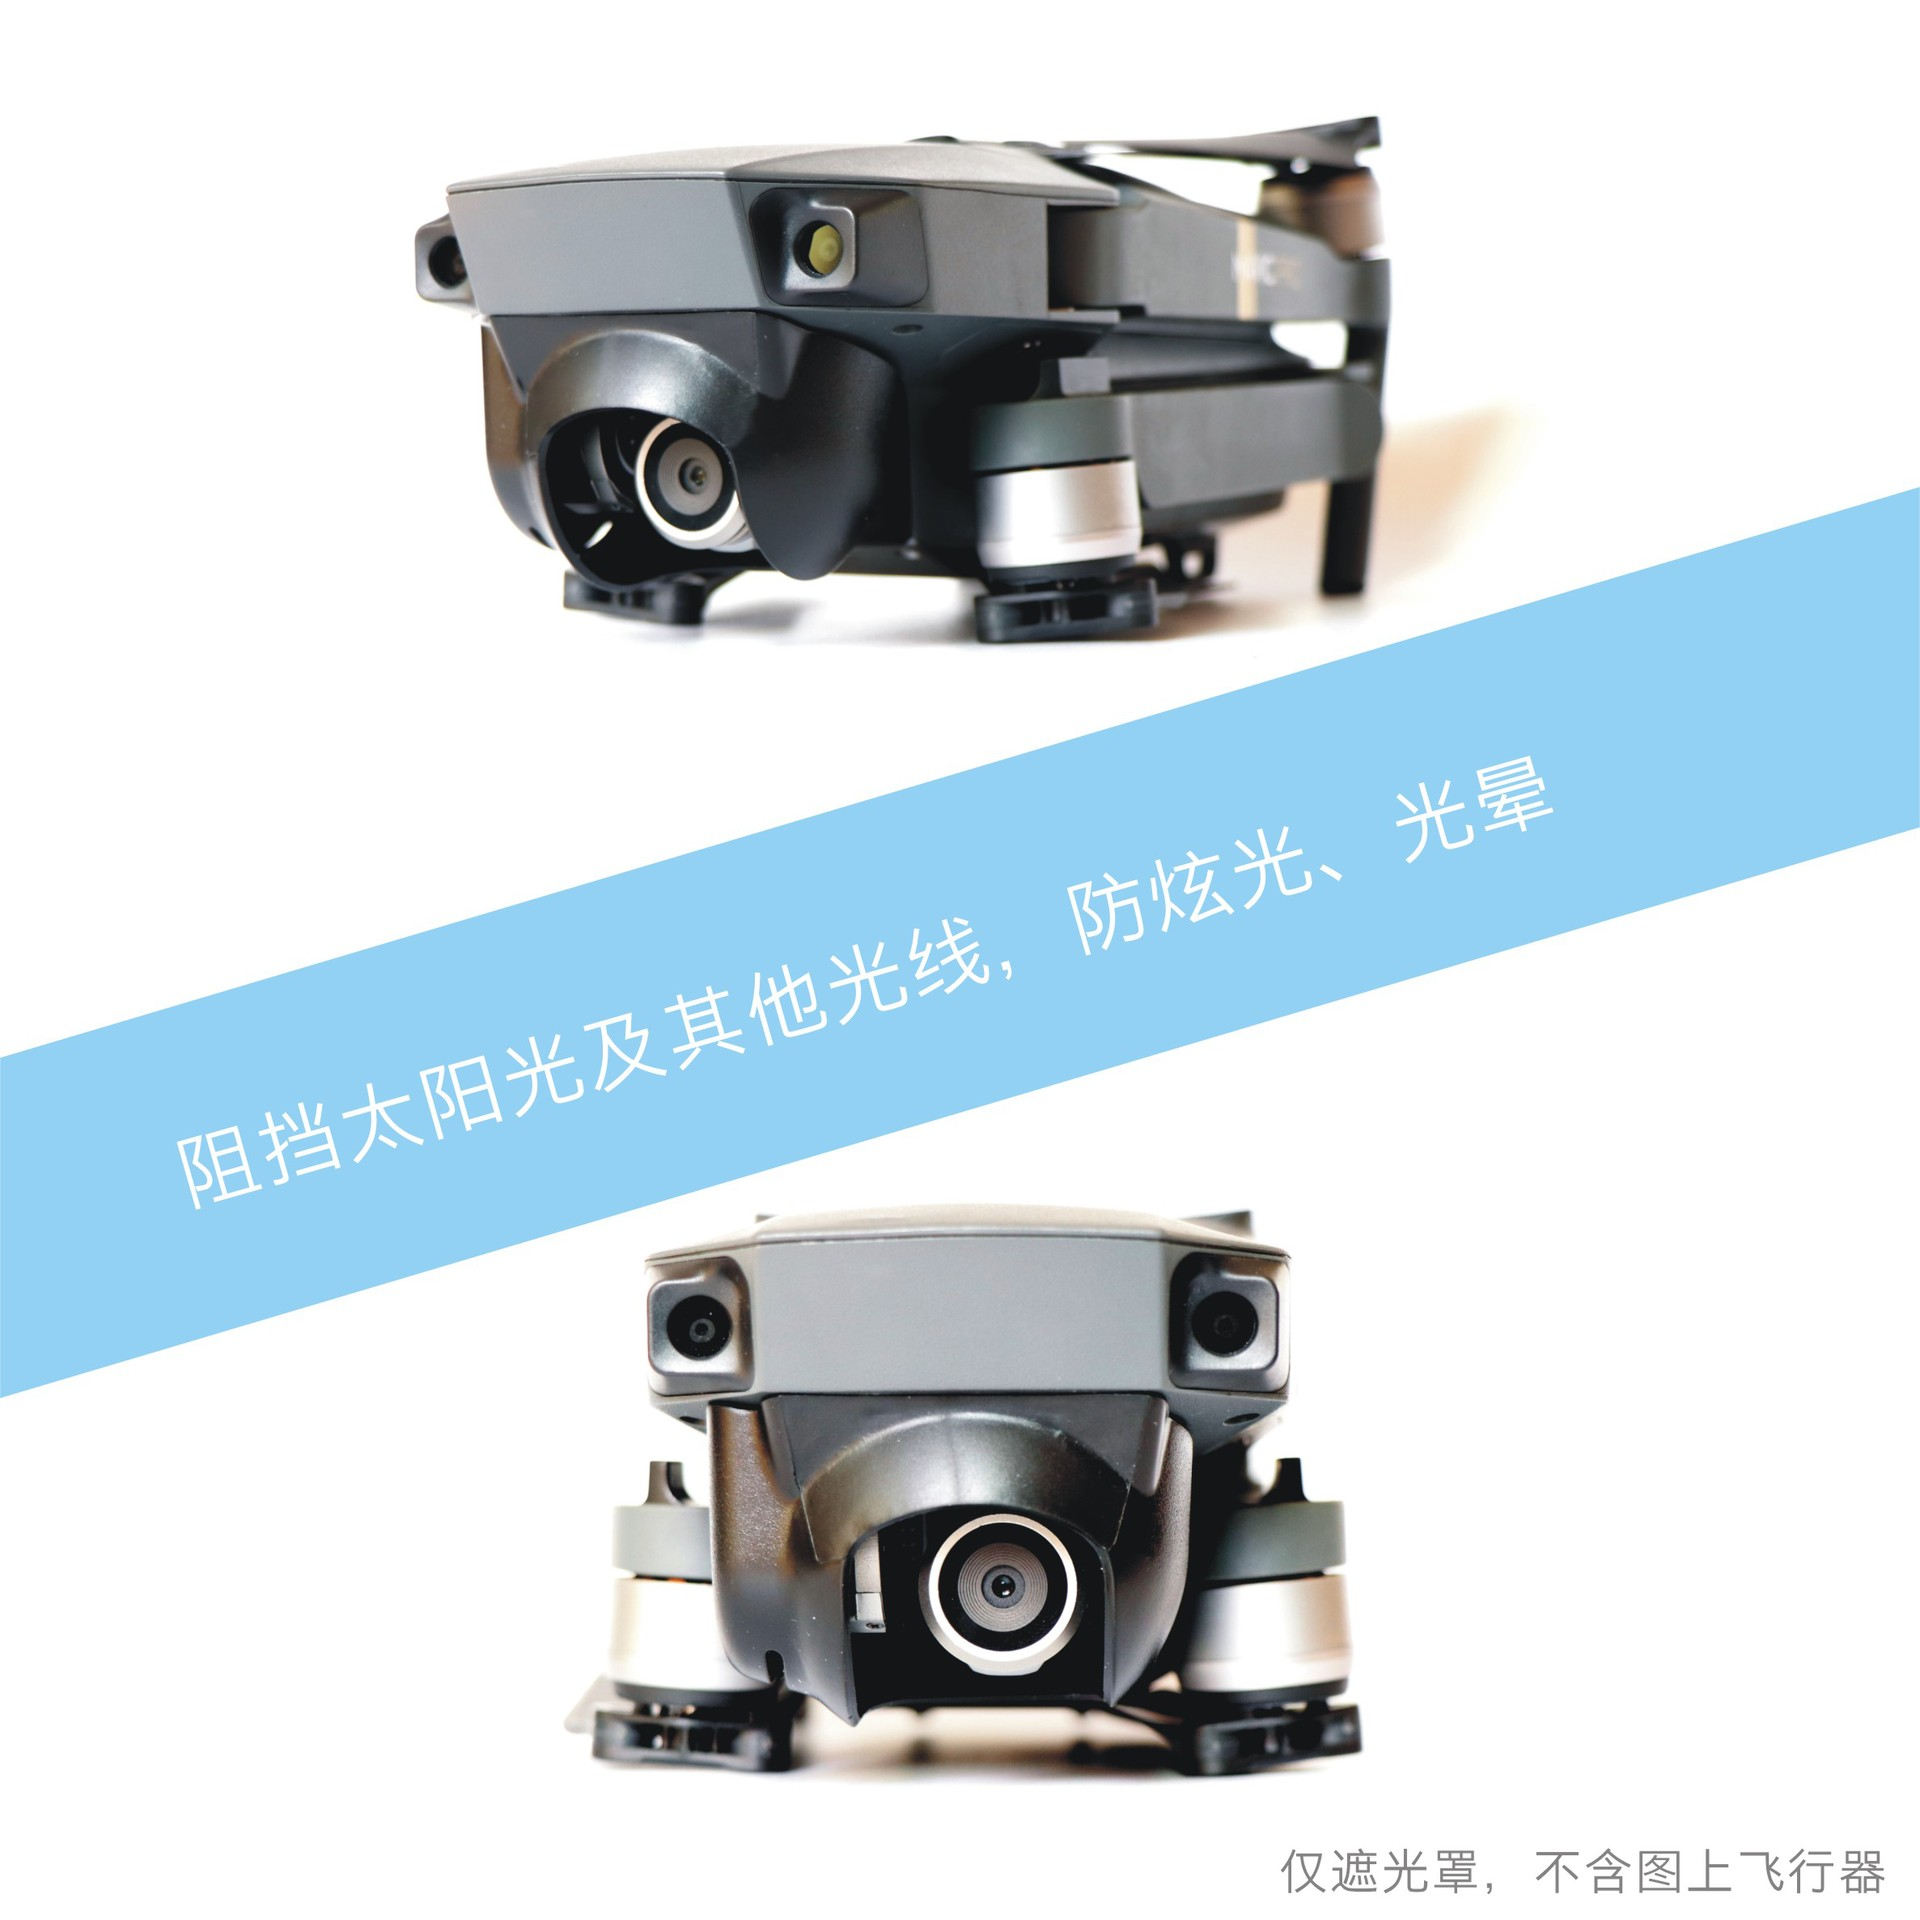 Dji Yulai Mavic Lens Hood Anti-Glare Anti-Halation Unmanned Aerial Vehicle Camera Pan & Tilt Protection